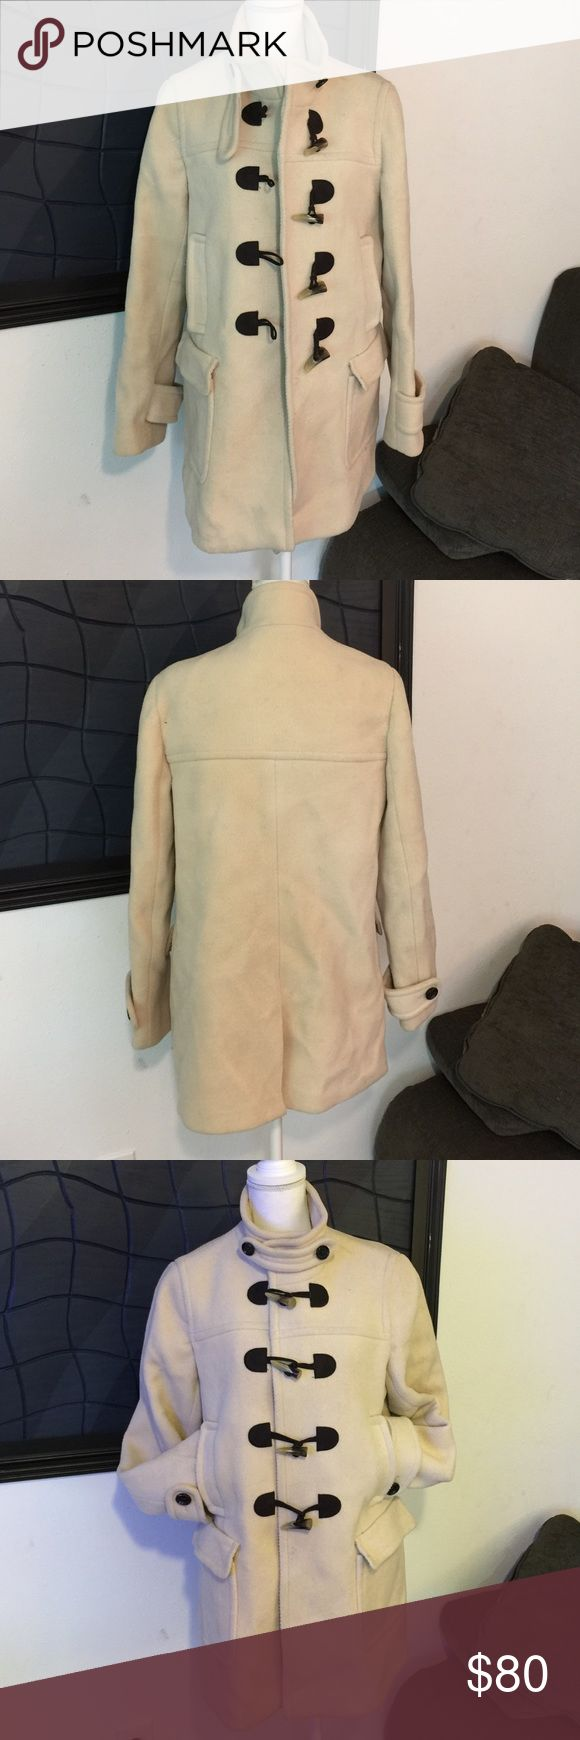 🎀EUC, L, Banana Republic, Cream, Wool, Pea Coat🎀 🎀Beautiful, EUC, Large, Banana Republic, Cream, Tea Length, 100% Wool Pea Coat.  This is a gorgeous, very high quality coat.  The lining feels like silk and is 100% acetate.  The coat has 4 toggle closures as well as a collar that is removable but can be buttoned for those extra cold days.  The coat has 4 pockets, 2 hand pockets right below the chest area & 2 larger ones below them.  This coat is elegant & perfect for a nice date night but…